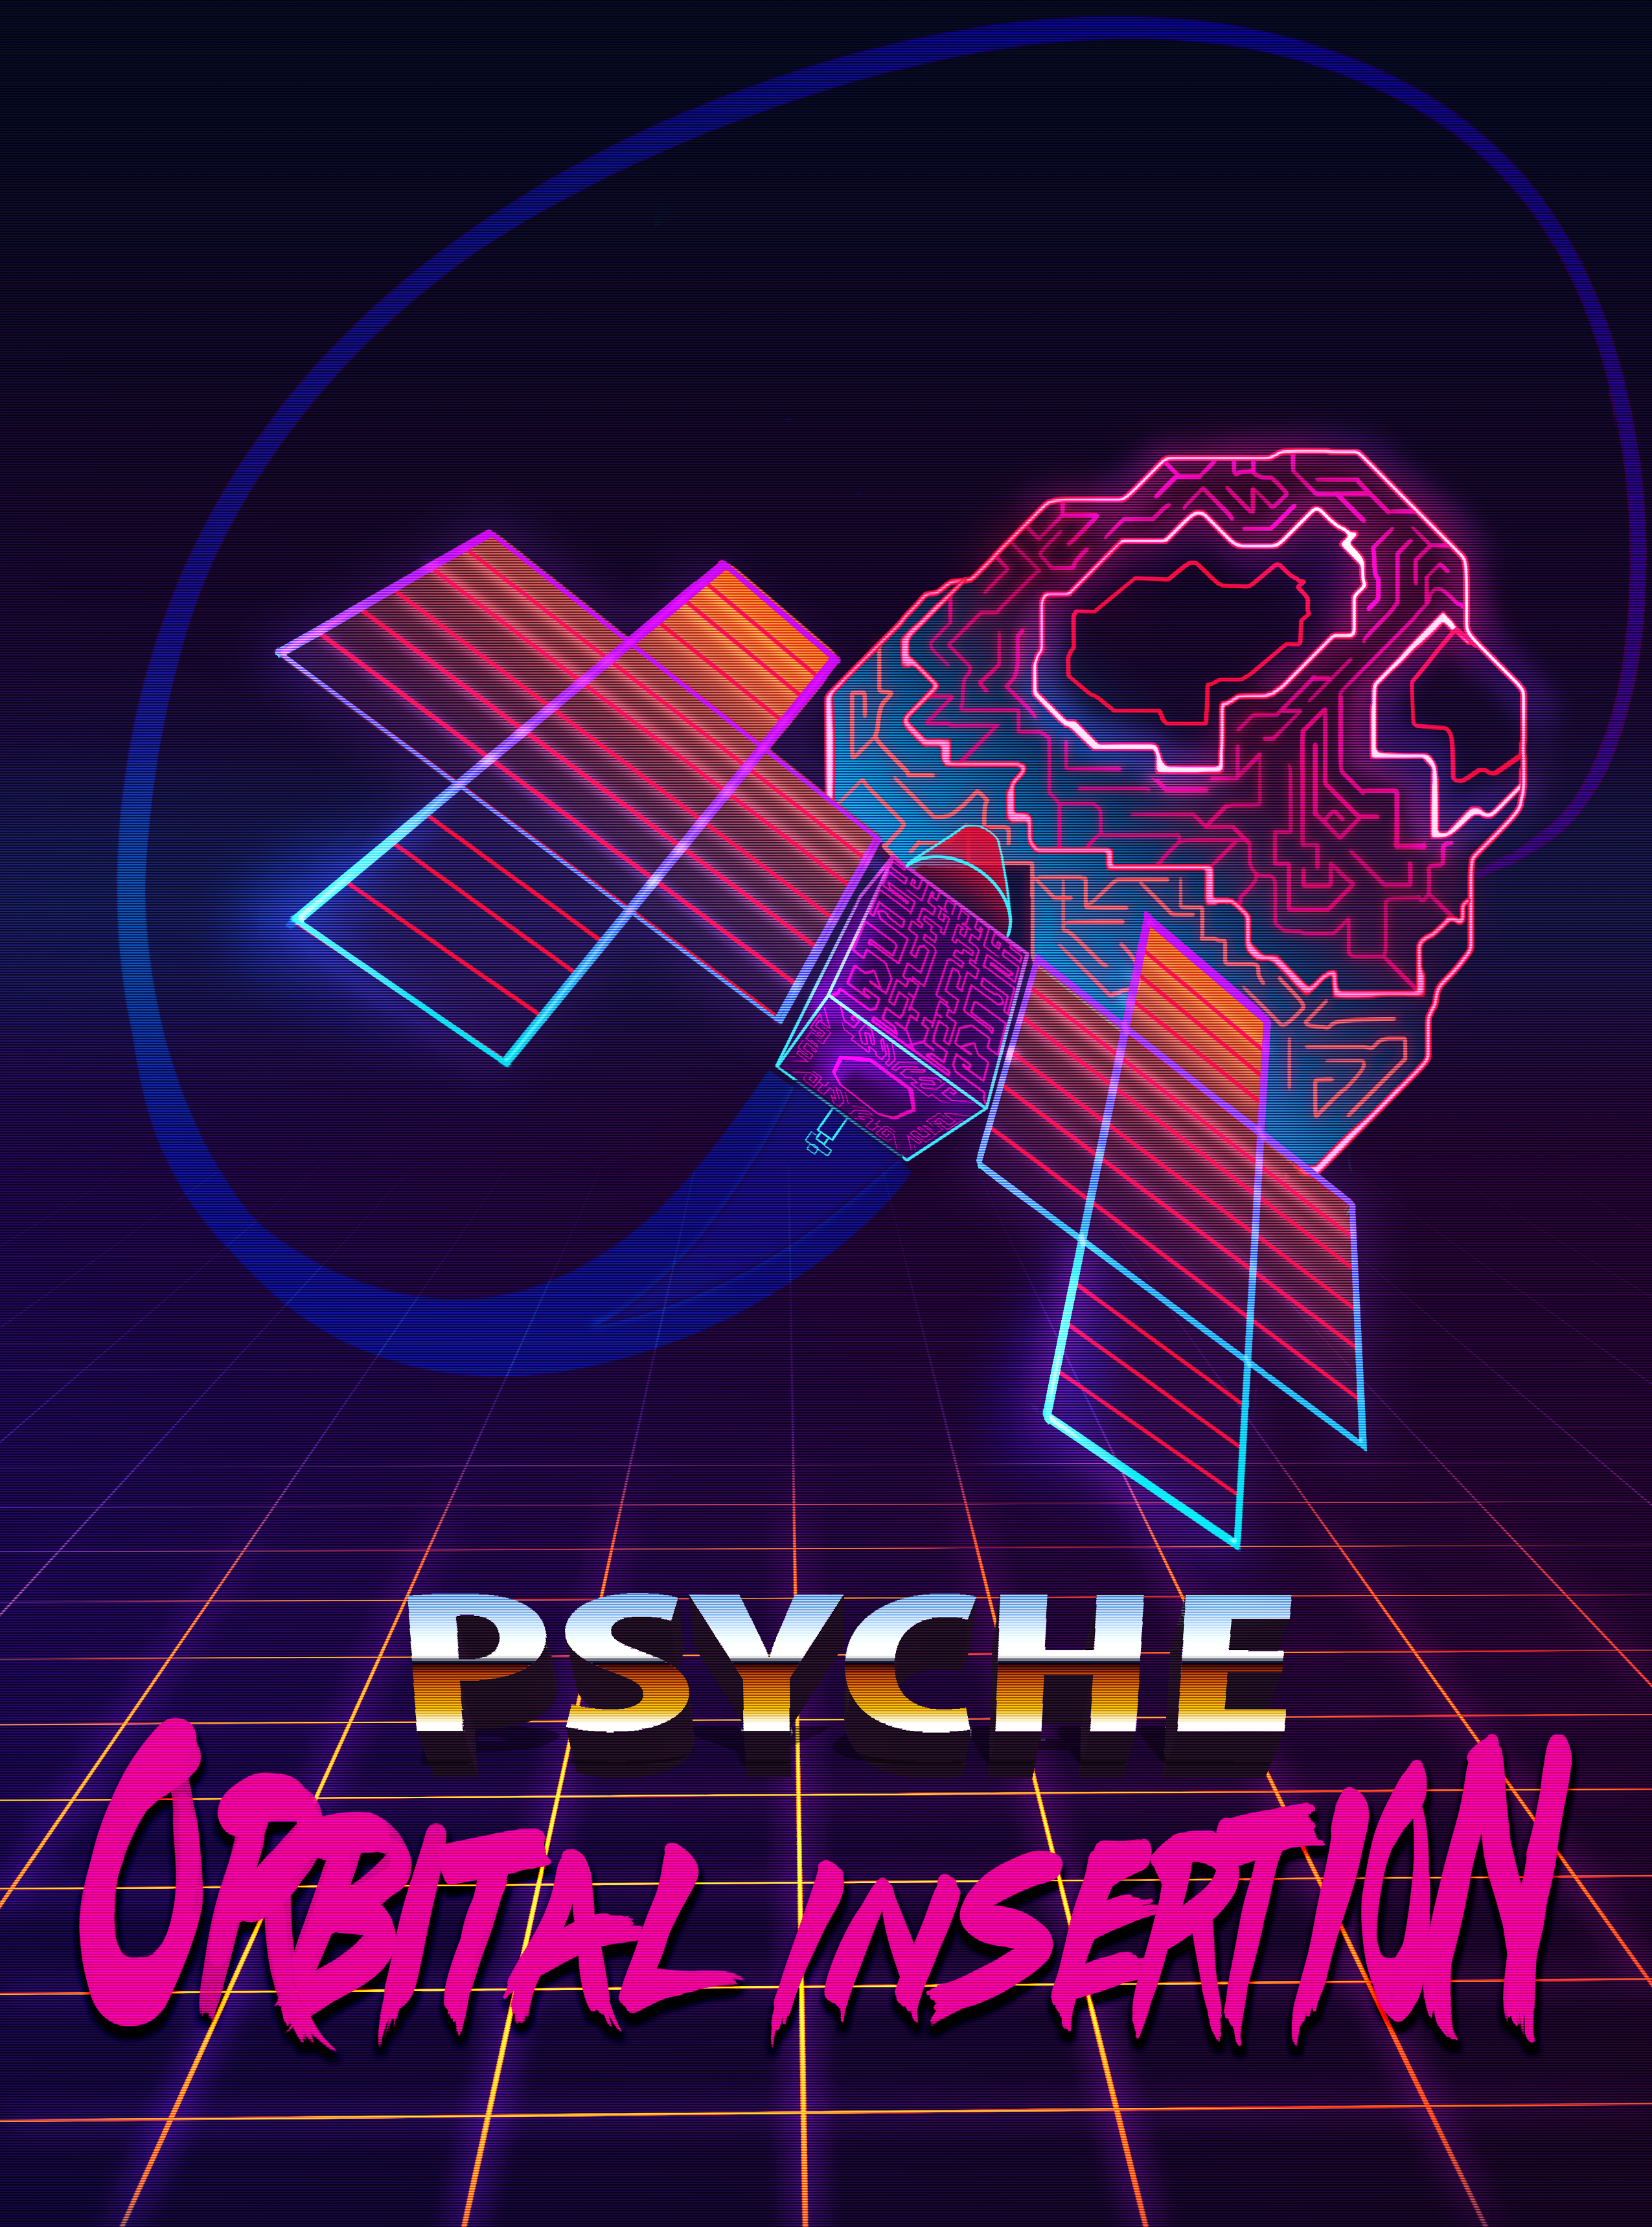 https://psyche.asu.edu/wp-content/uploads/2018/01/Psyche_Inspired_17-18_CVasquez_Project3_HypercolorPsyche_180103.png